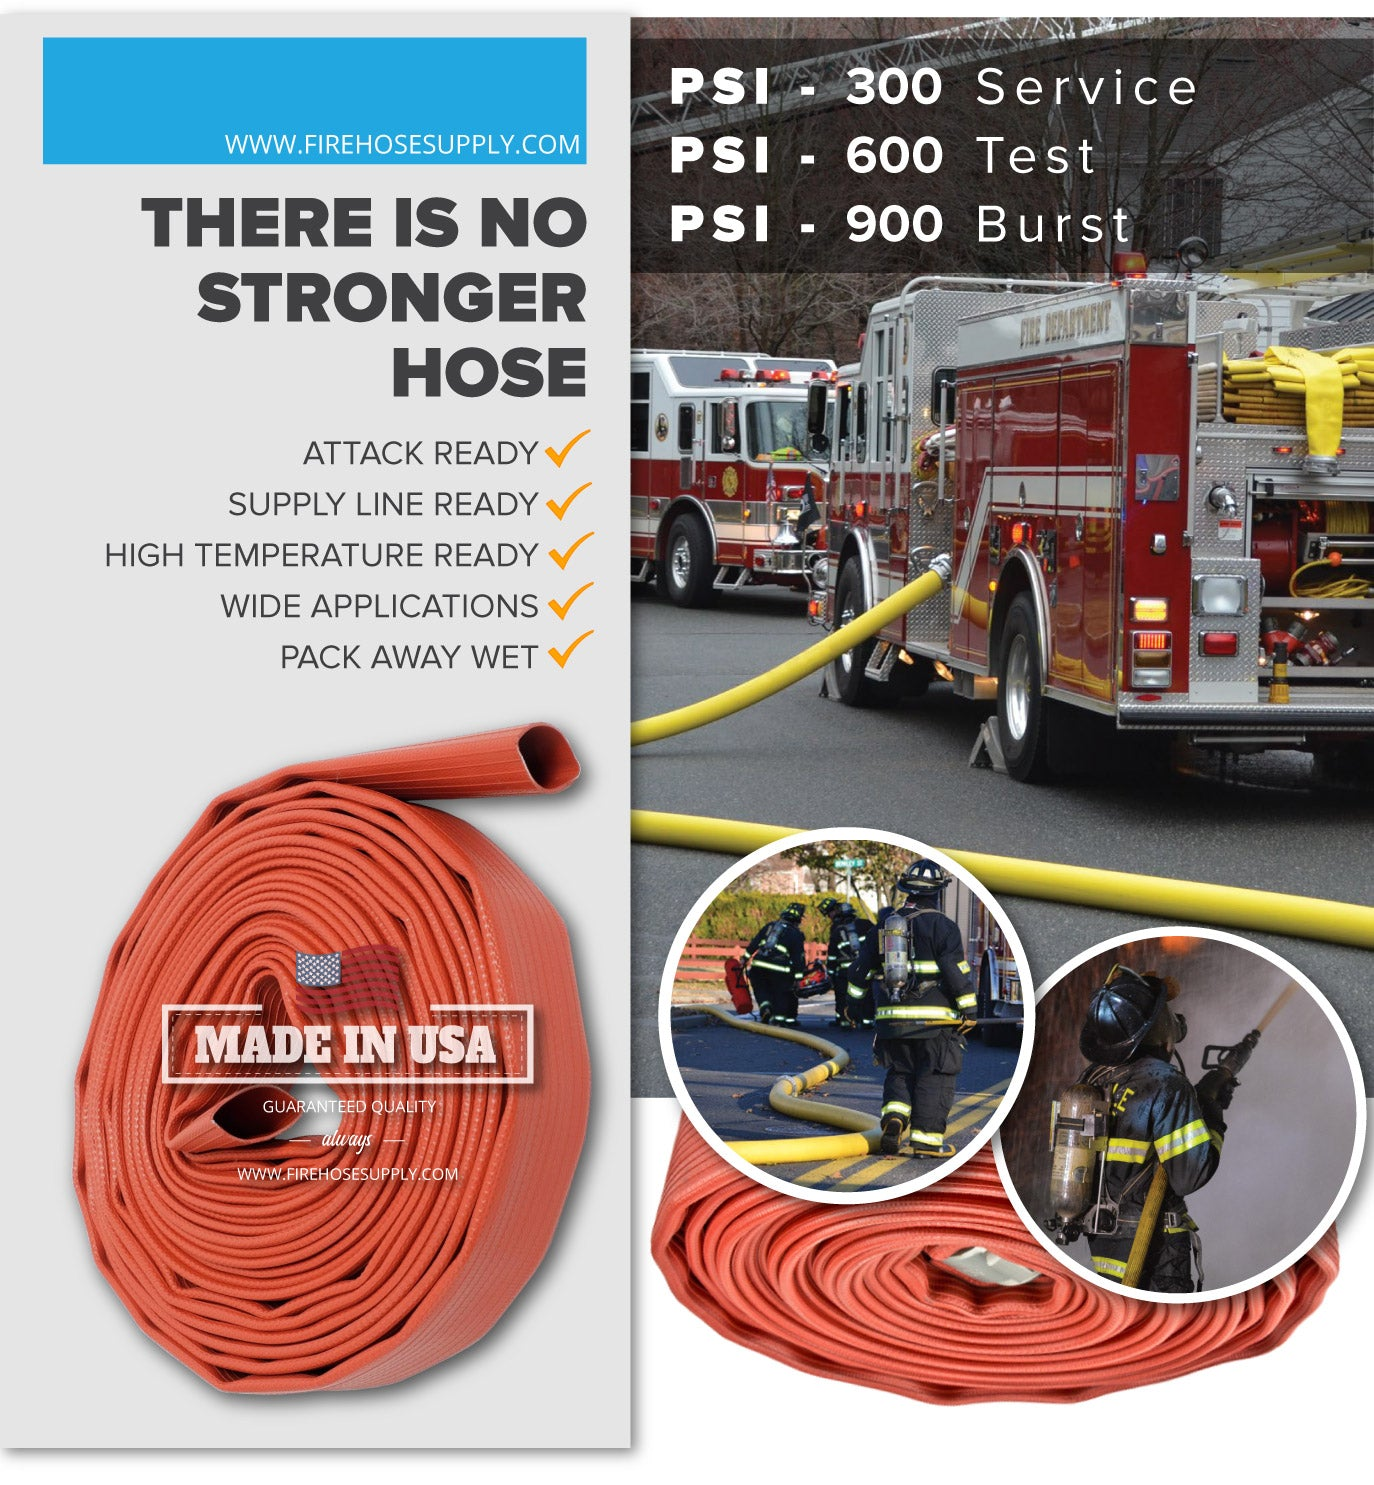 2 Inch Rubber Fire Hose Material Only Supply And Attack Ready Firefighter Red 600 PSI Test